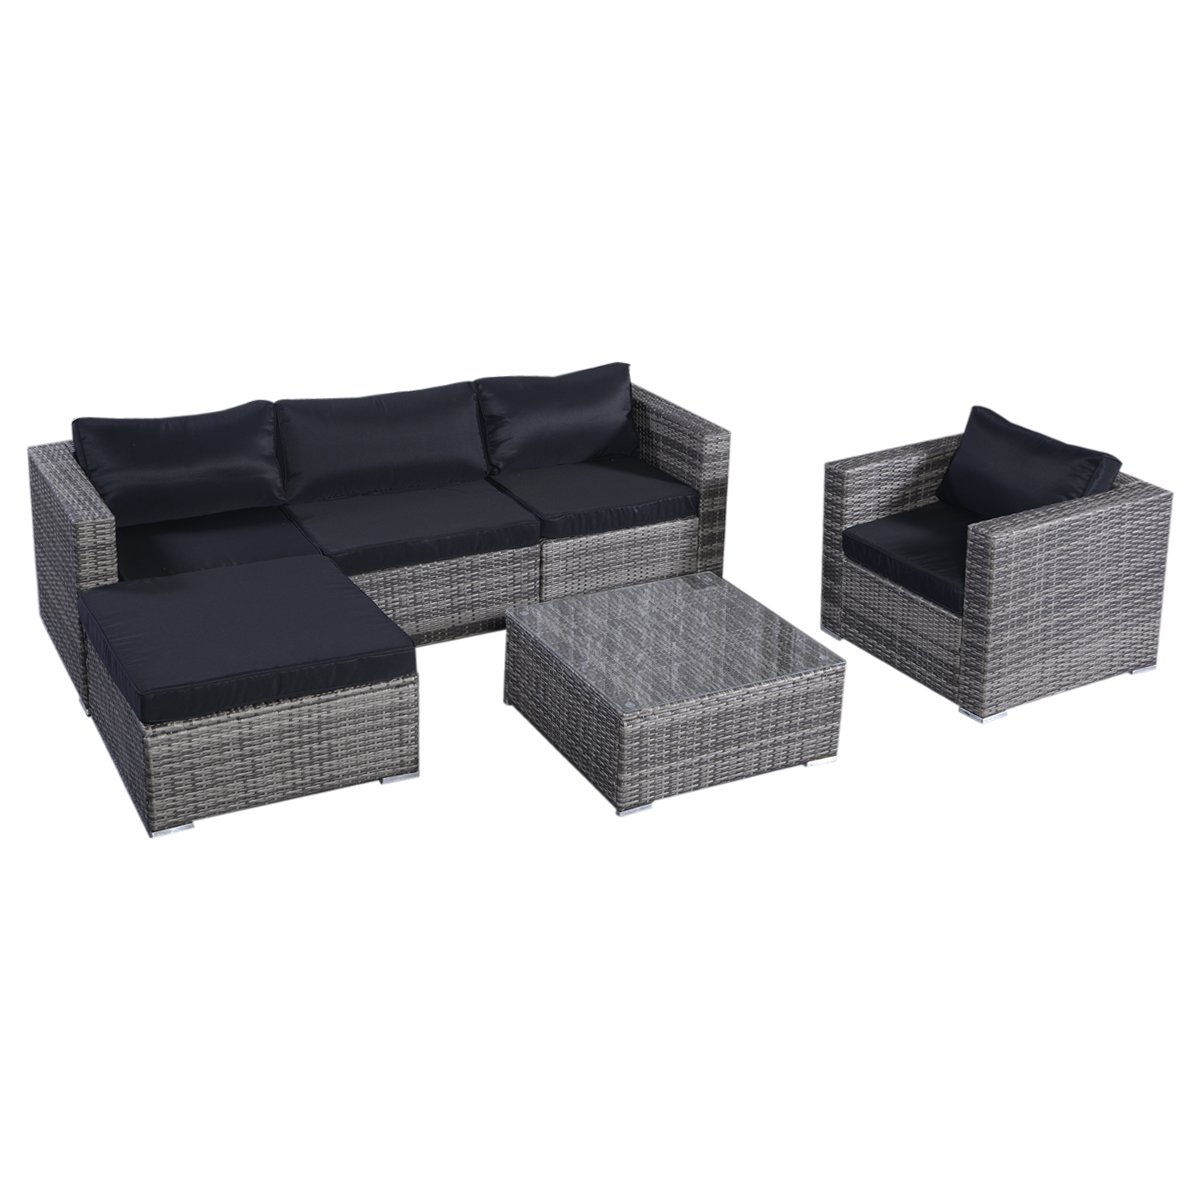 TANGKULA Patio Furniture Set 6 Piece Outdoor Lawn Backyard Poolside All Weather PE Wicker Rattan Steel Frame Sectional Cushioned Seat Sofa Conversation Set (Gradient Gray with Black Cushion Cover)